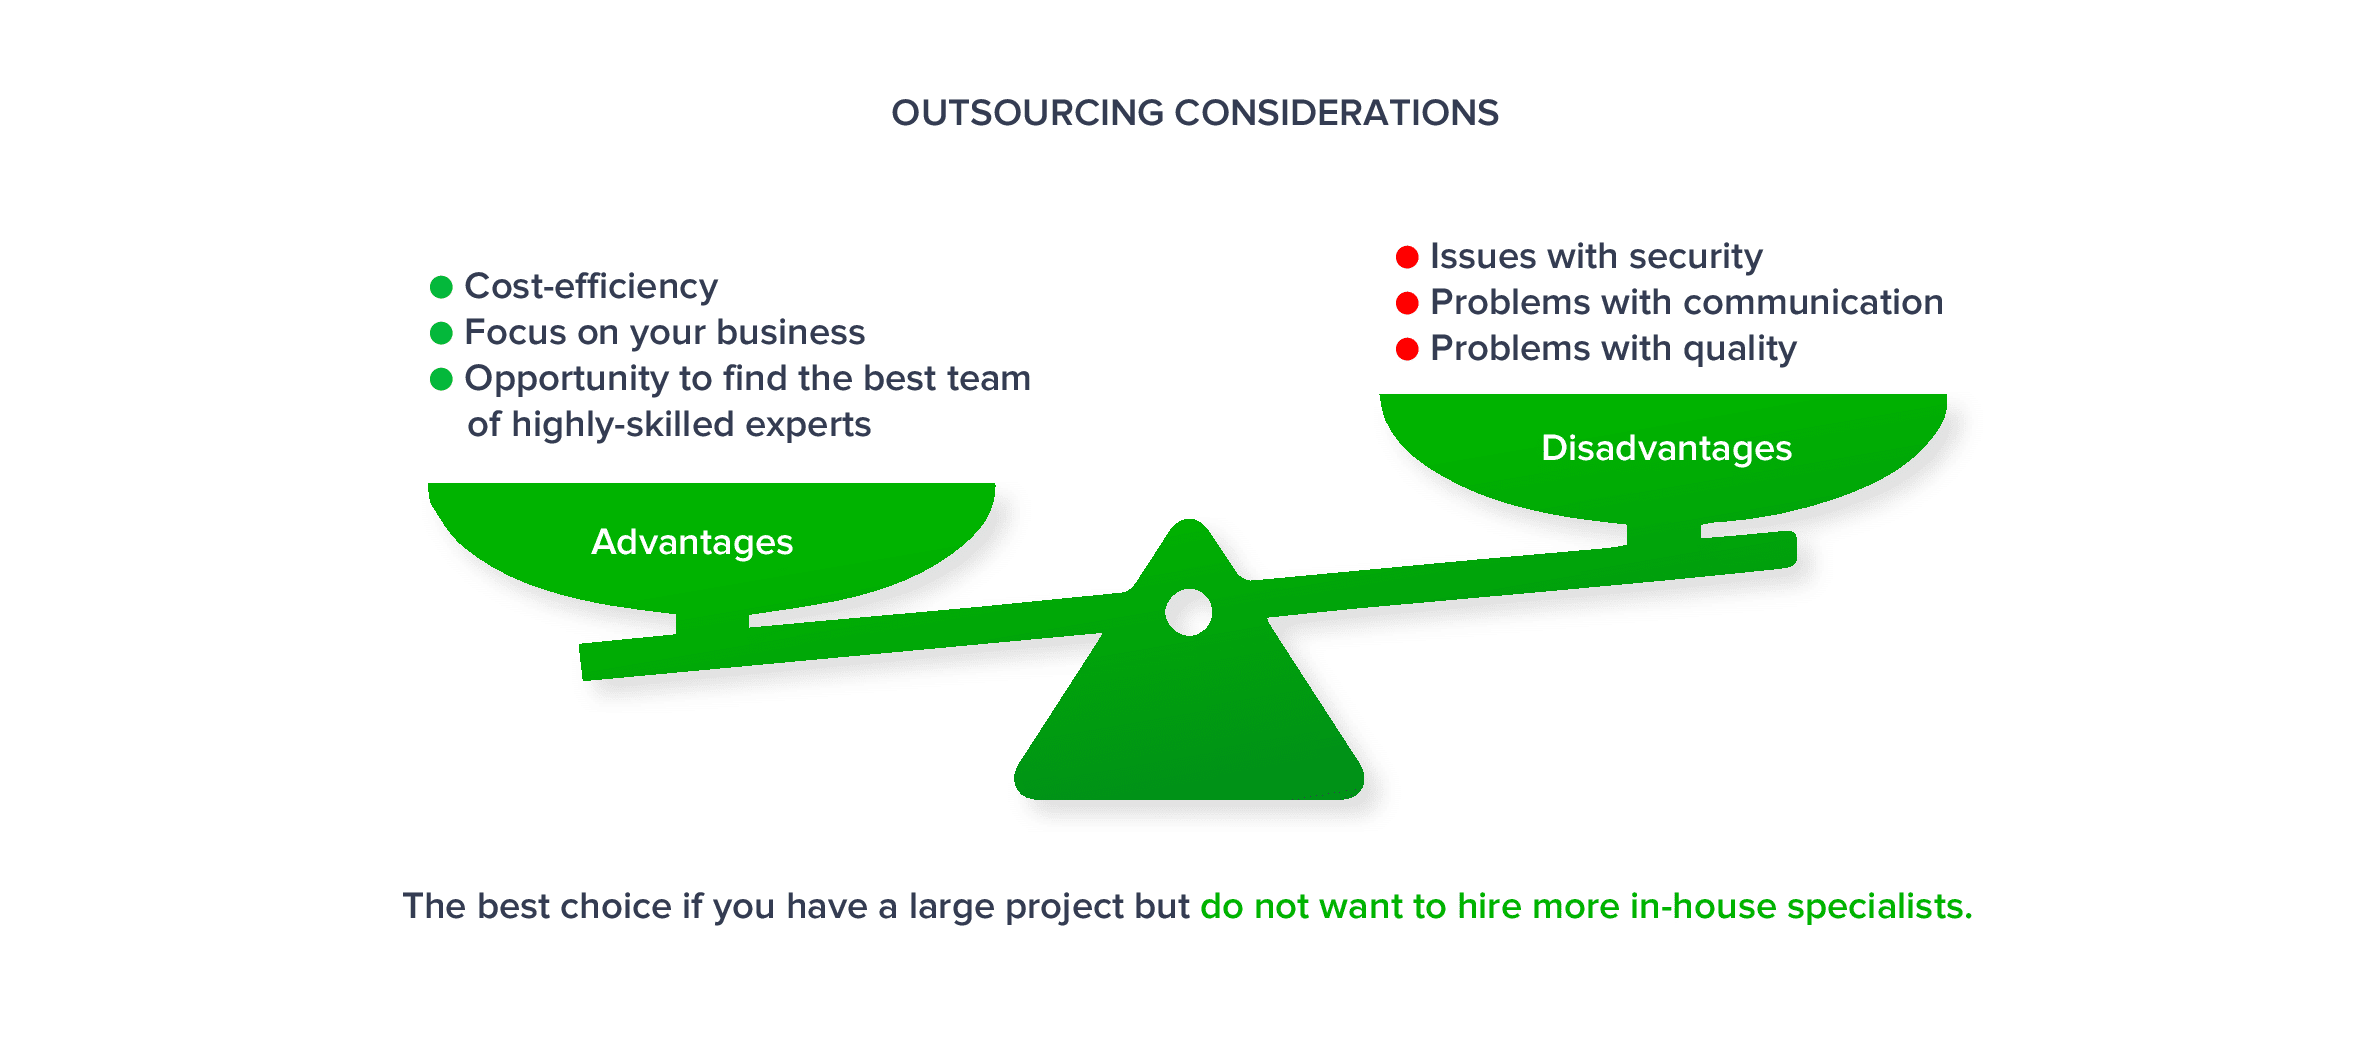 Outsourcing Considirations - IT Outsourcing and Staff Augmentation